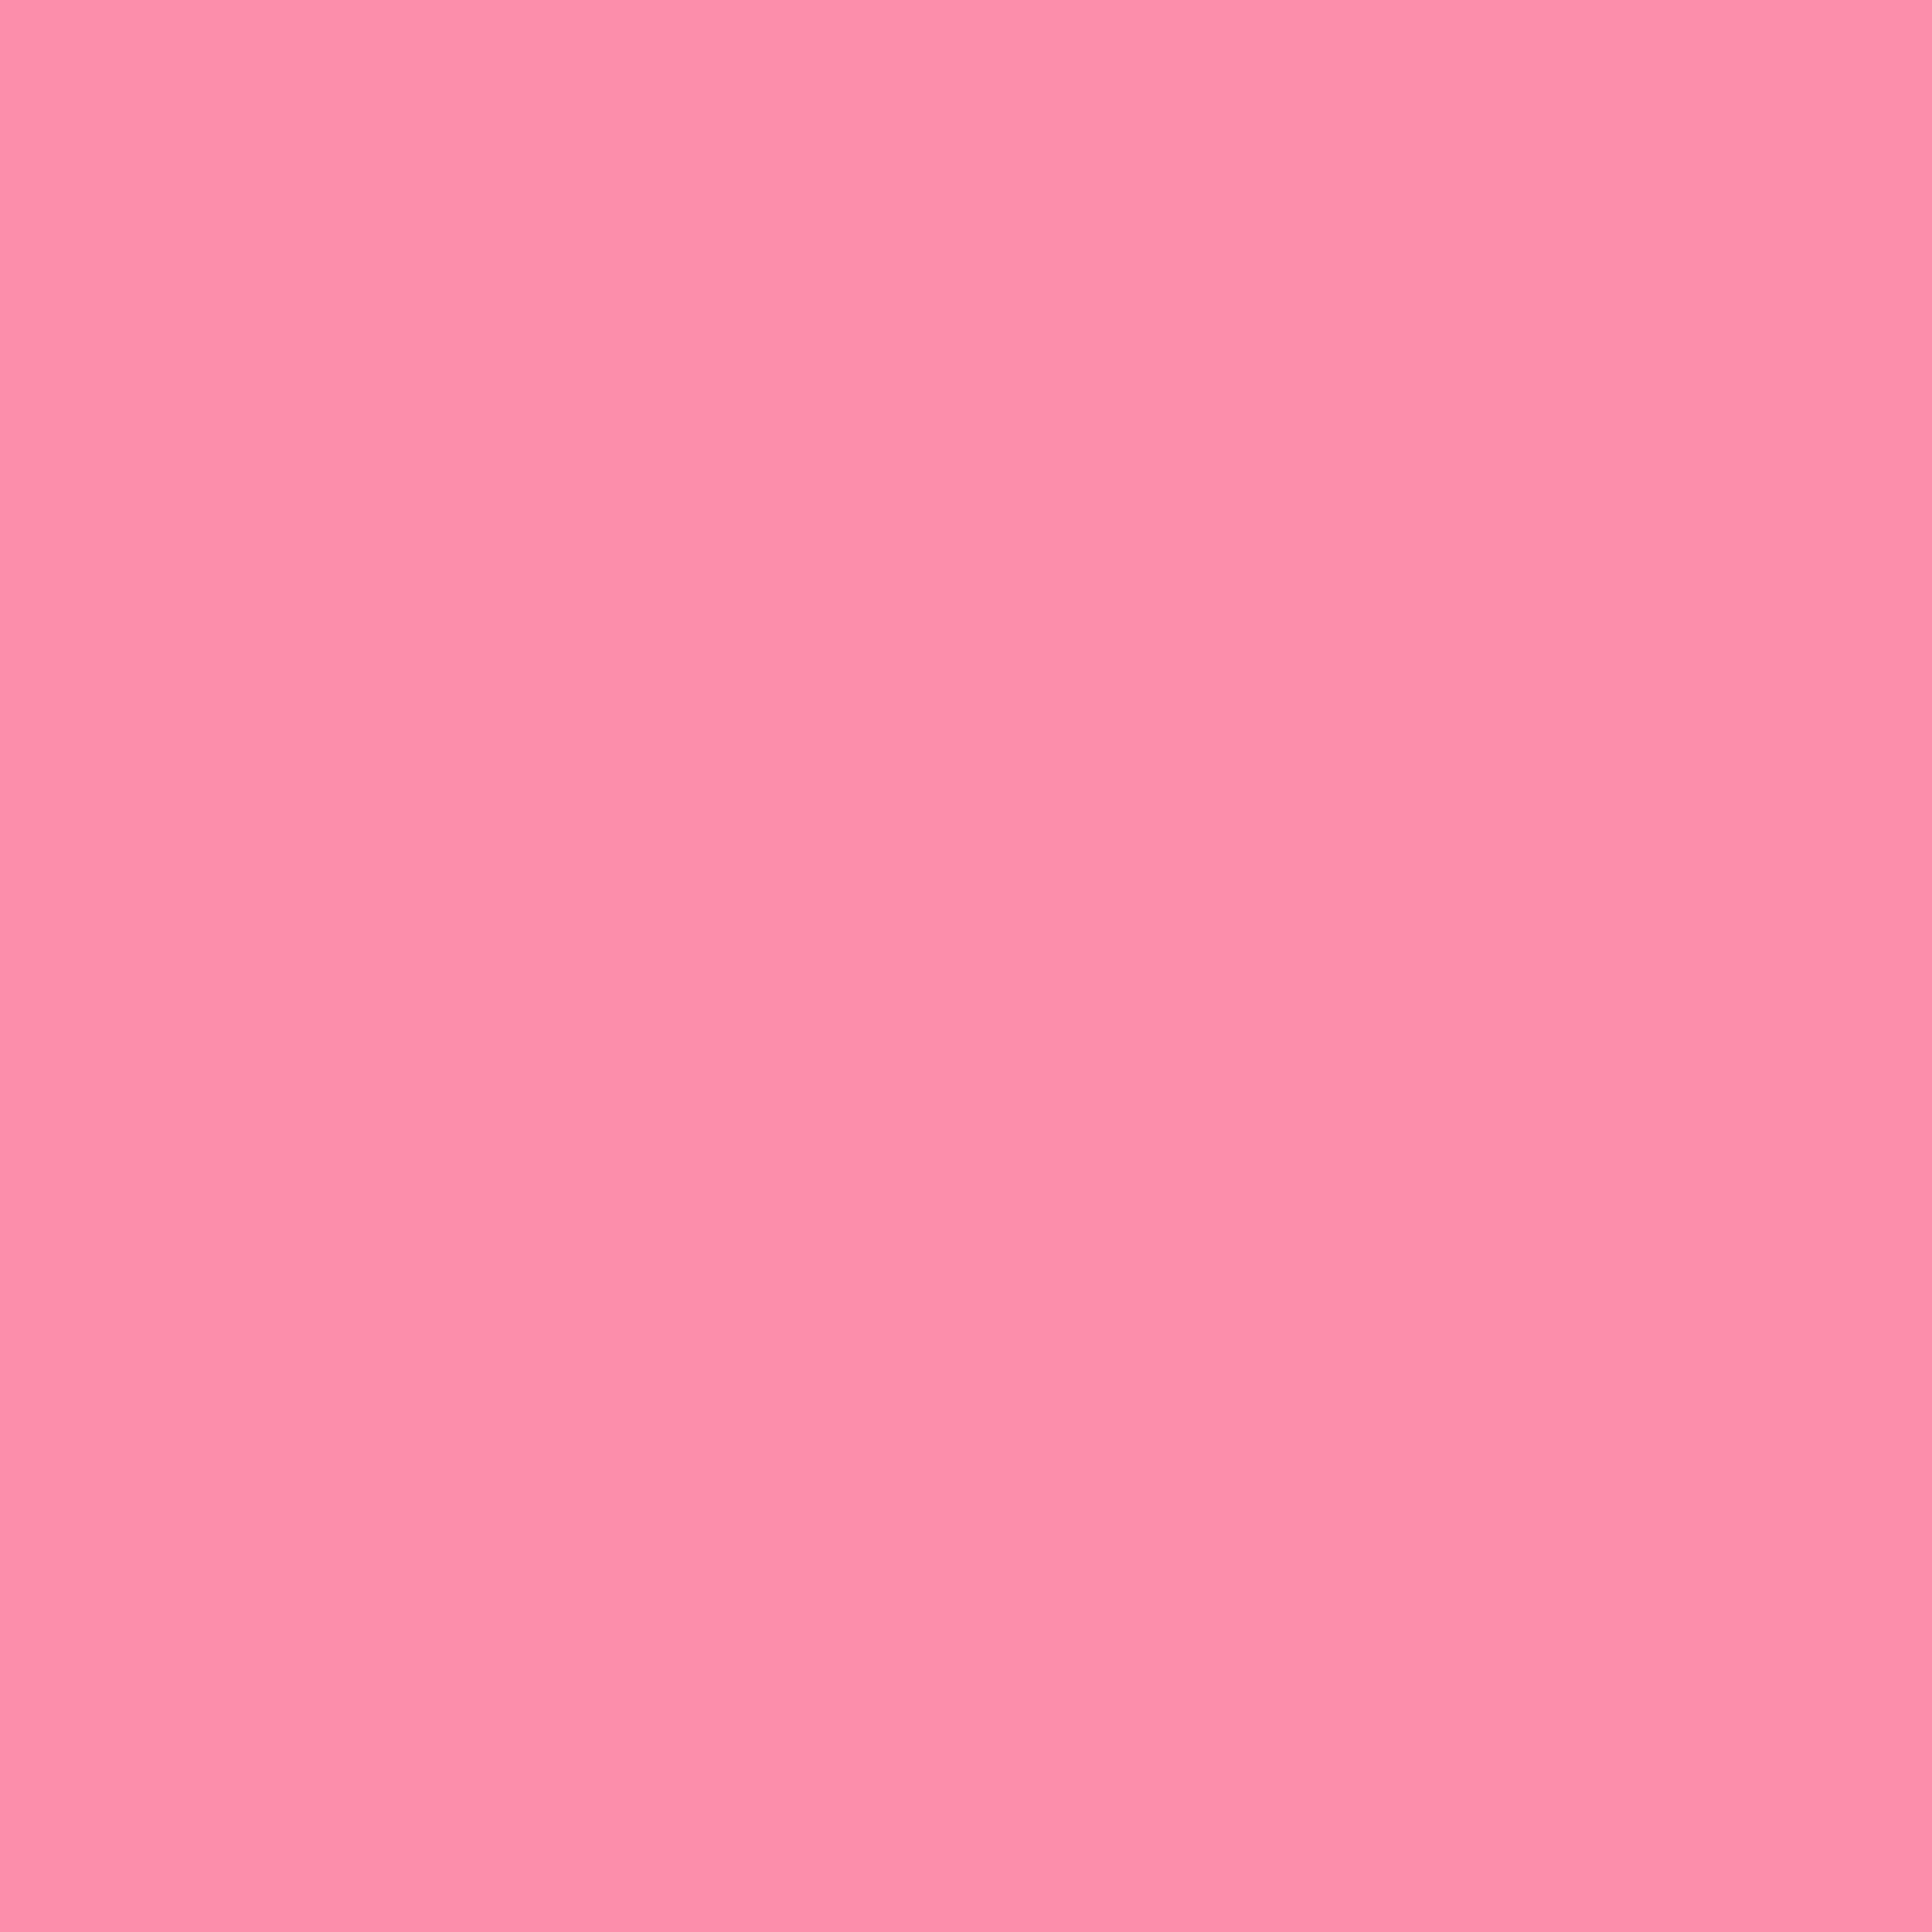 2048x2048 Flamingo Pink Solid Color Background